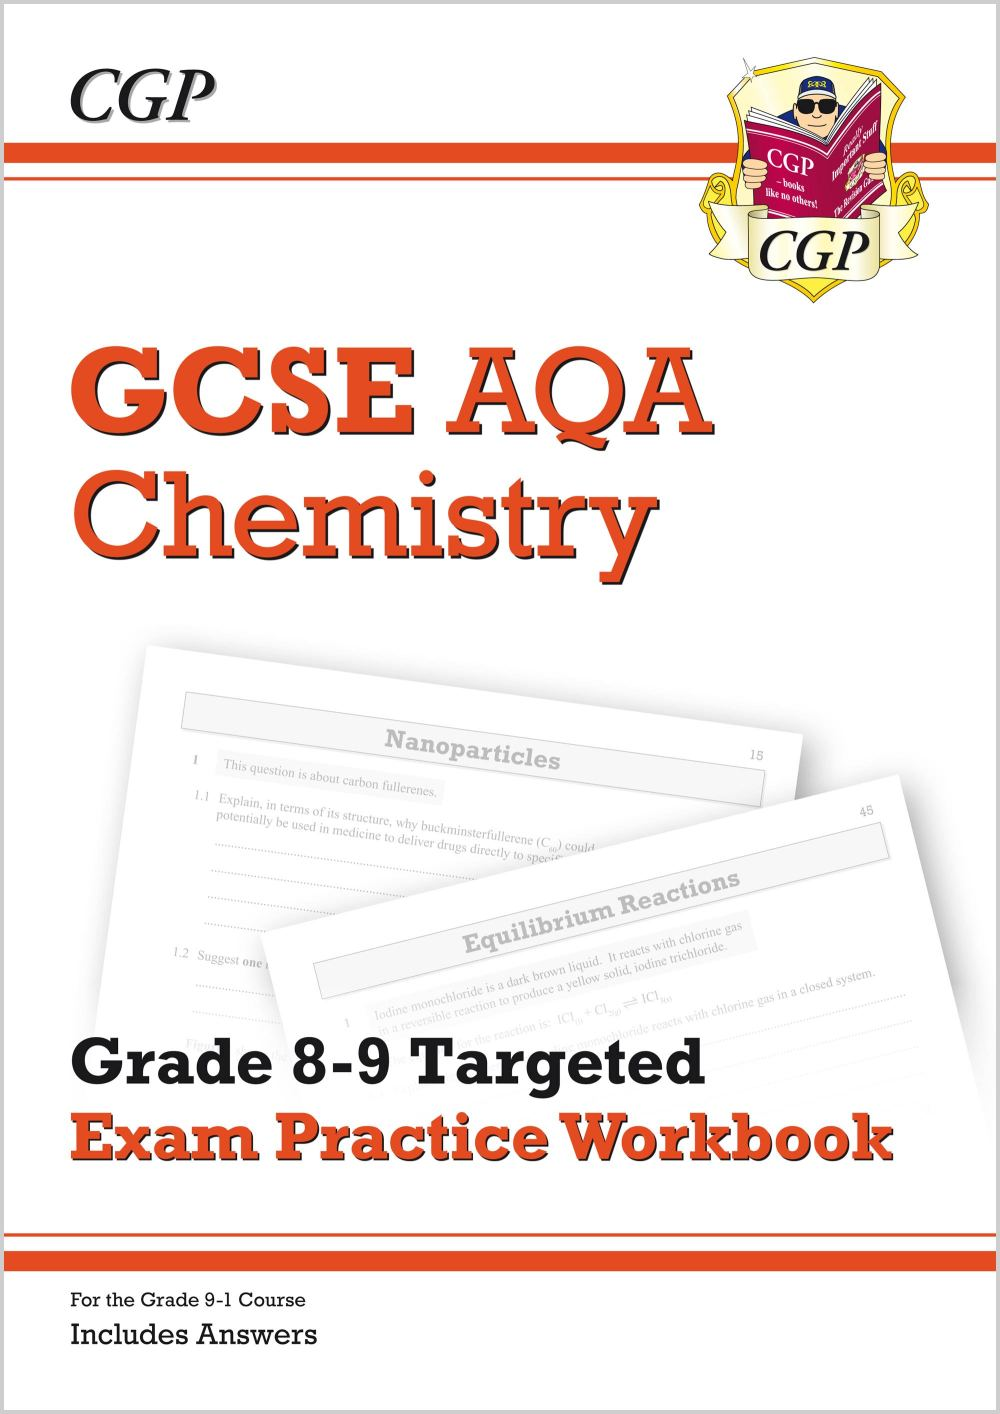 medium resolution of GCSE Chemistry AQA Grade 8-9 Targeted Exam Practice Workbook (includes  Answers)   CGP Books